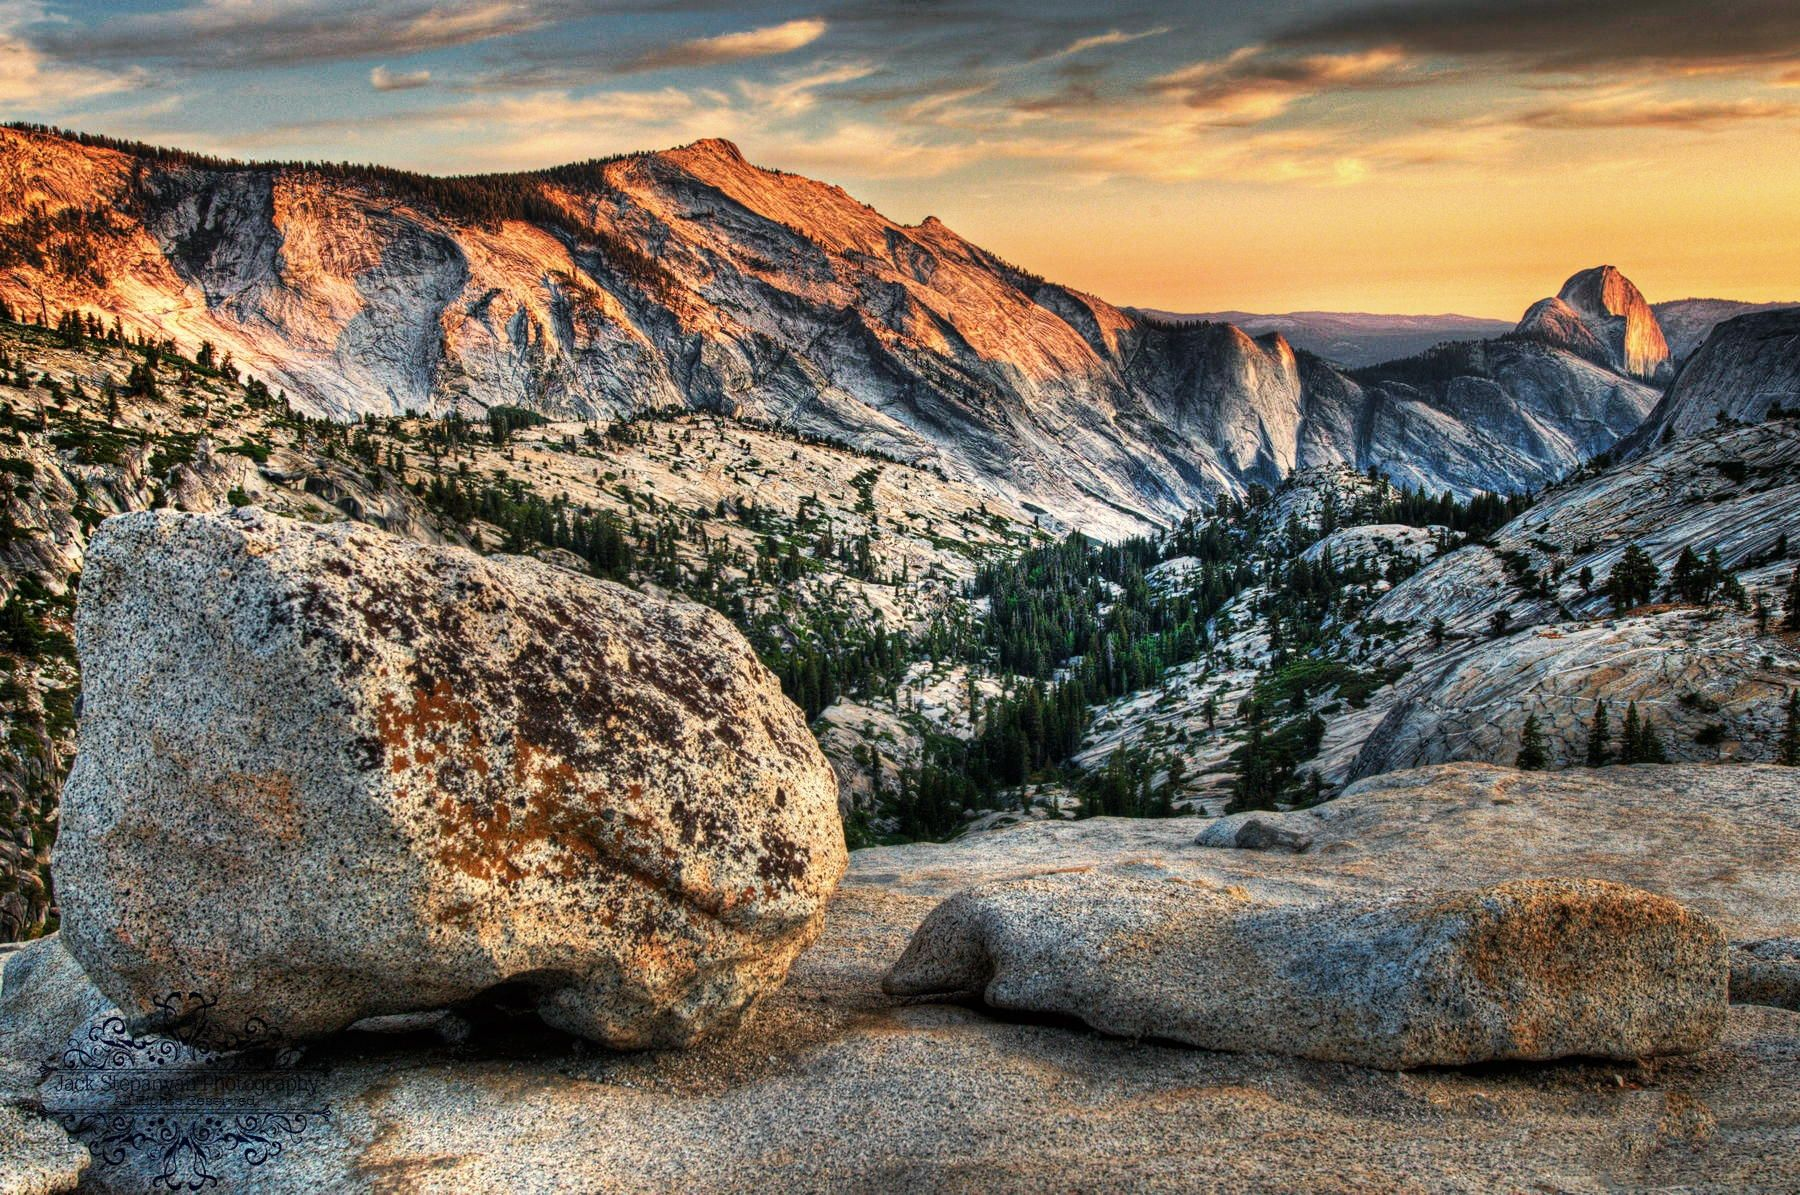 Olmsted Point , Yosemite National Park by Jack Stepanyan on 500px